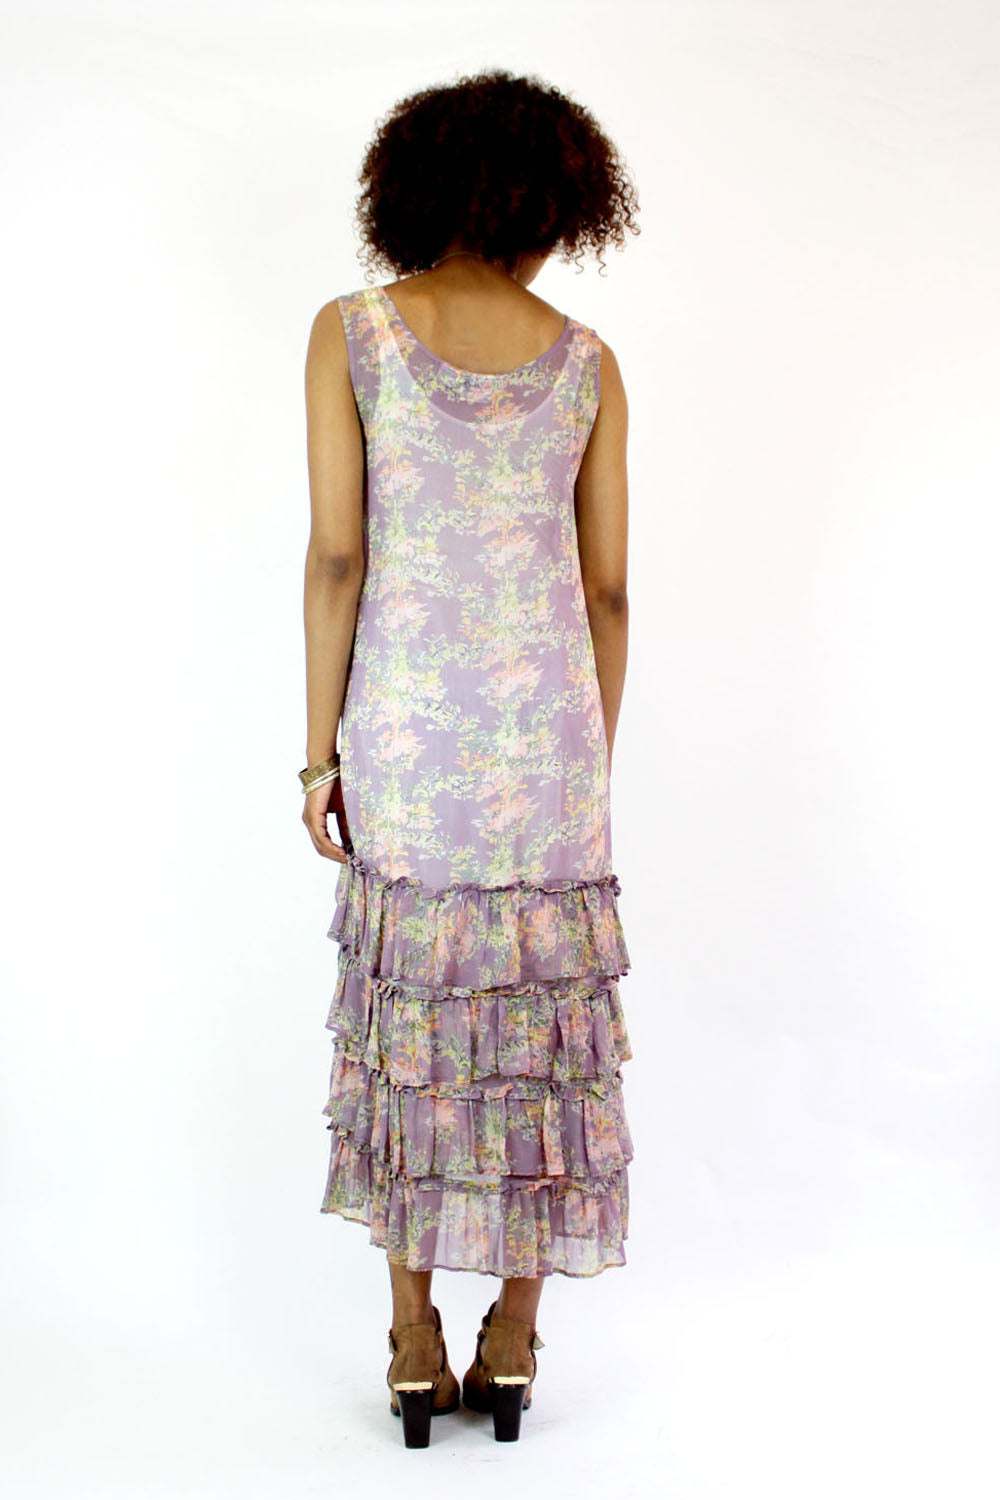 ruffled sheer dress S/M